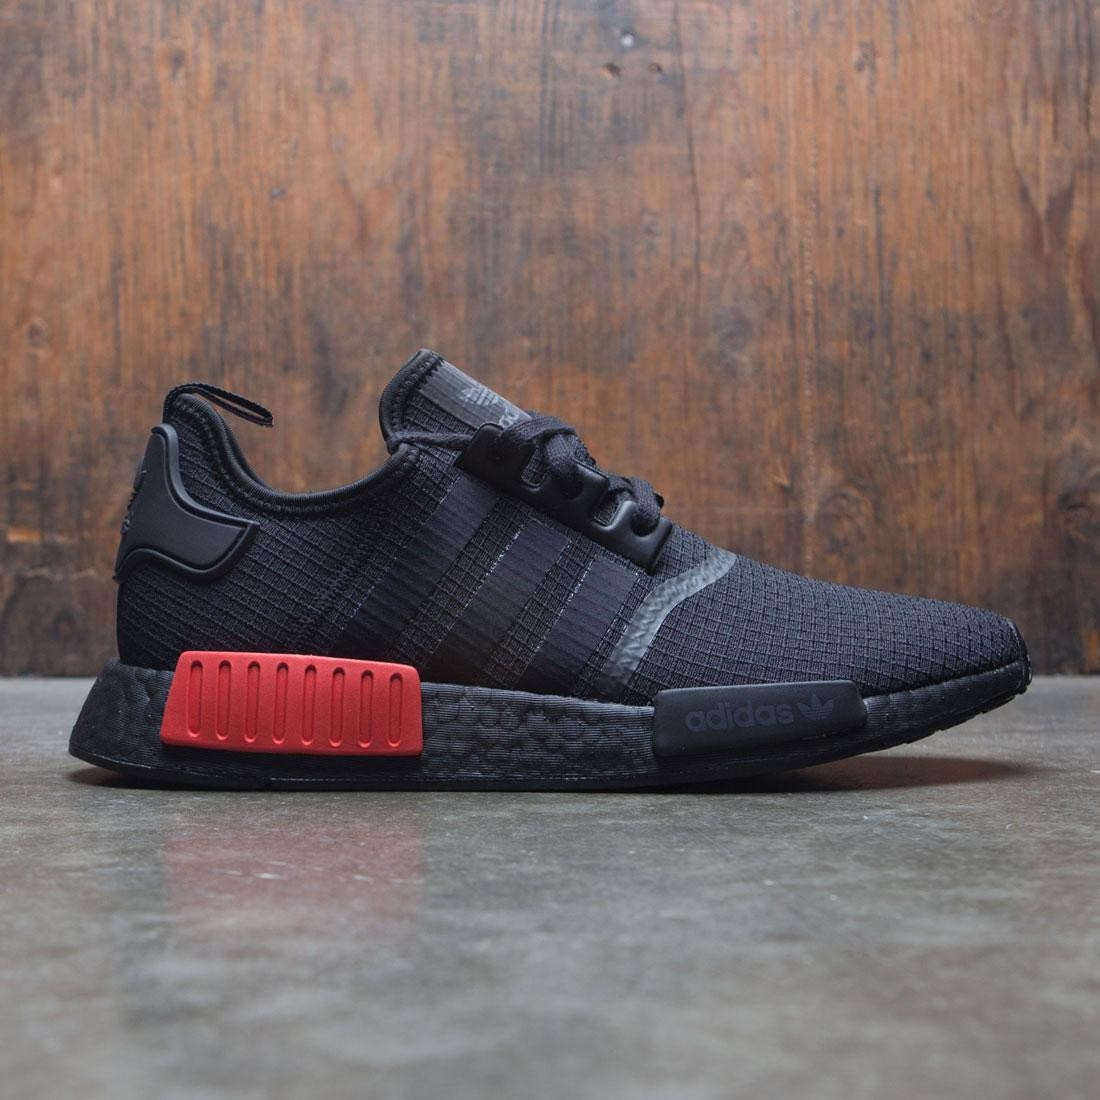 adidas nmd r1 trainers core black lush red cheap online